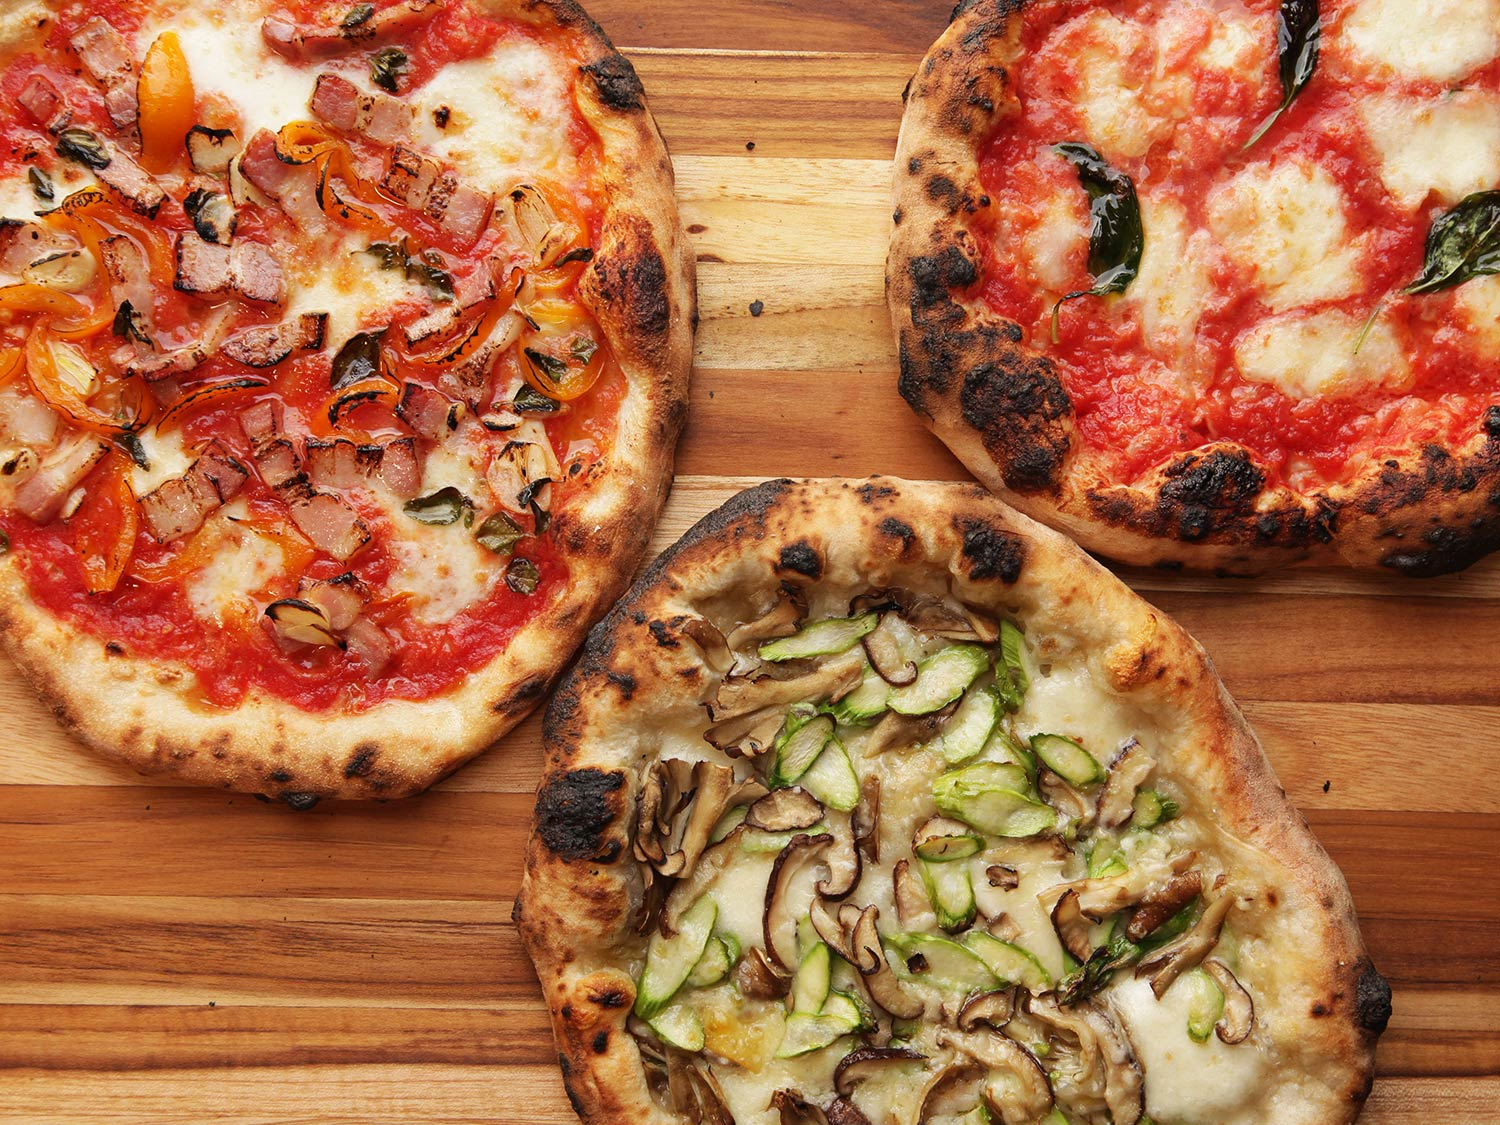 How to Make Cultured Probiotic Rich Pizza Crust